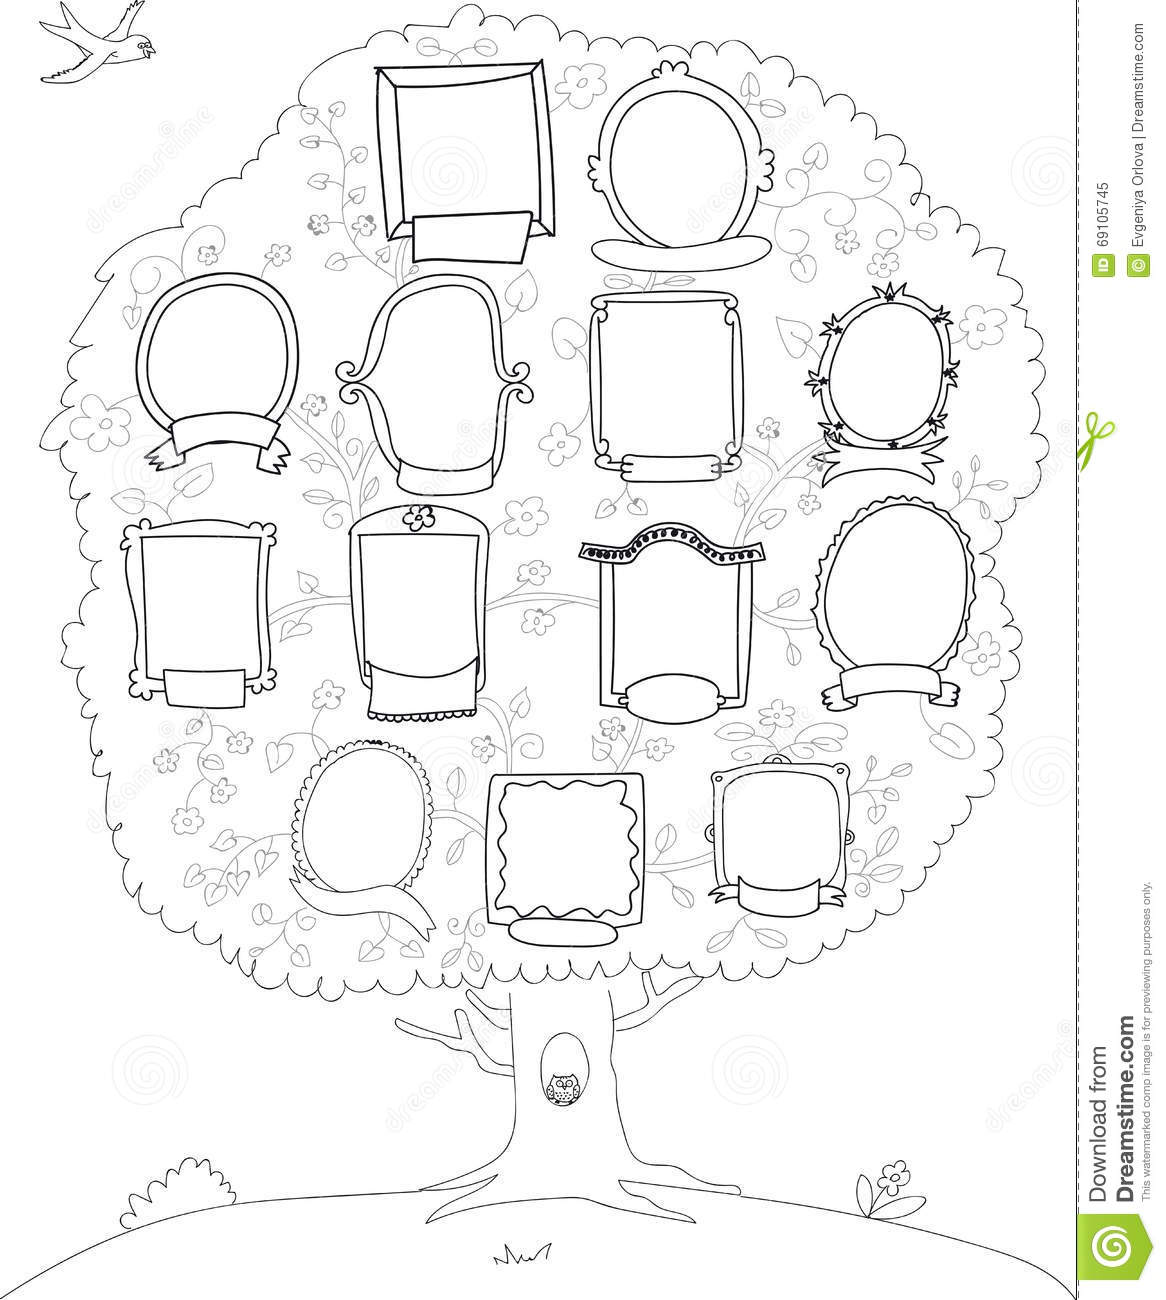 Family Tree Genealogical Tree Stock Vector